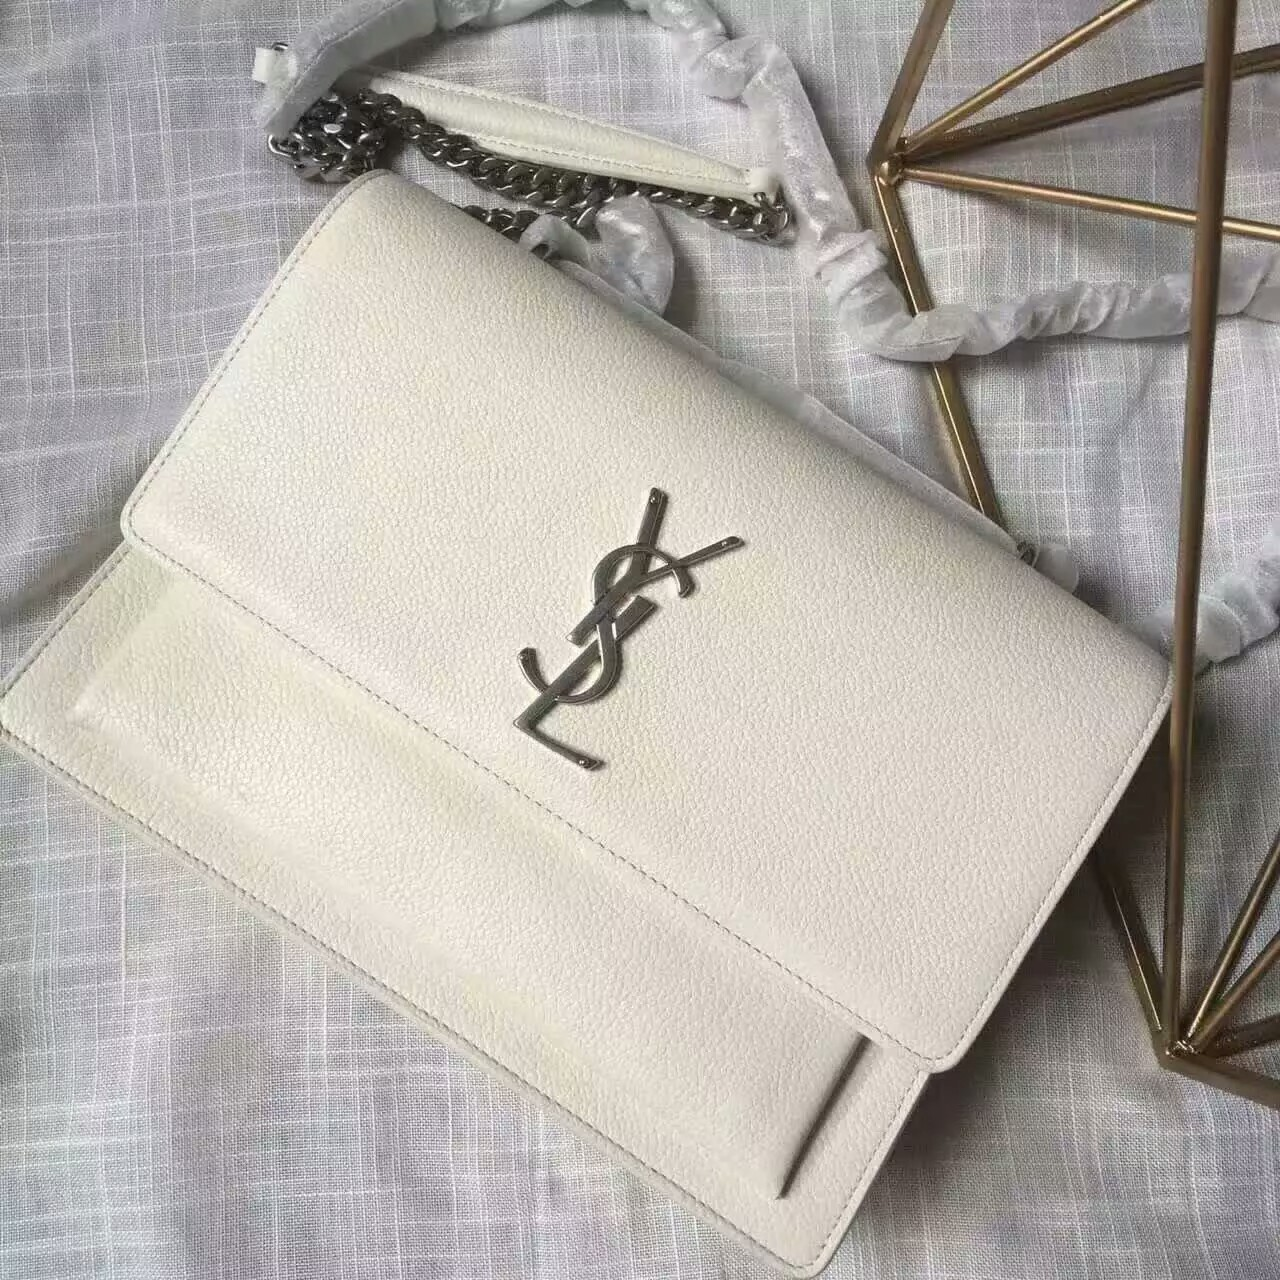 Limited Edition!2016 Saint Laurent Bags Cheap Sale-Saint Laurent Medium Sunset Monogram Bag in Dove White Grained Leather